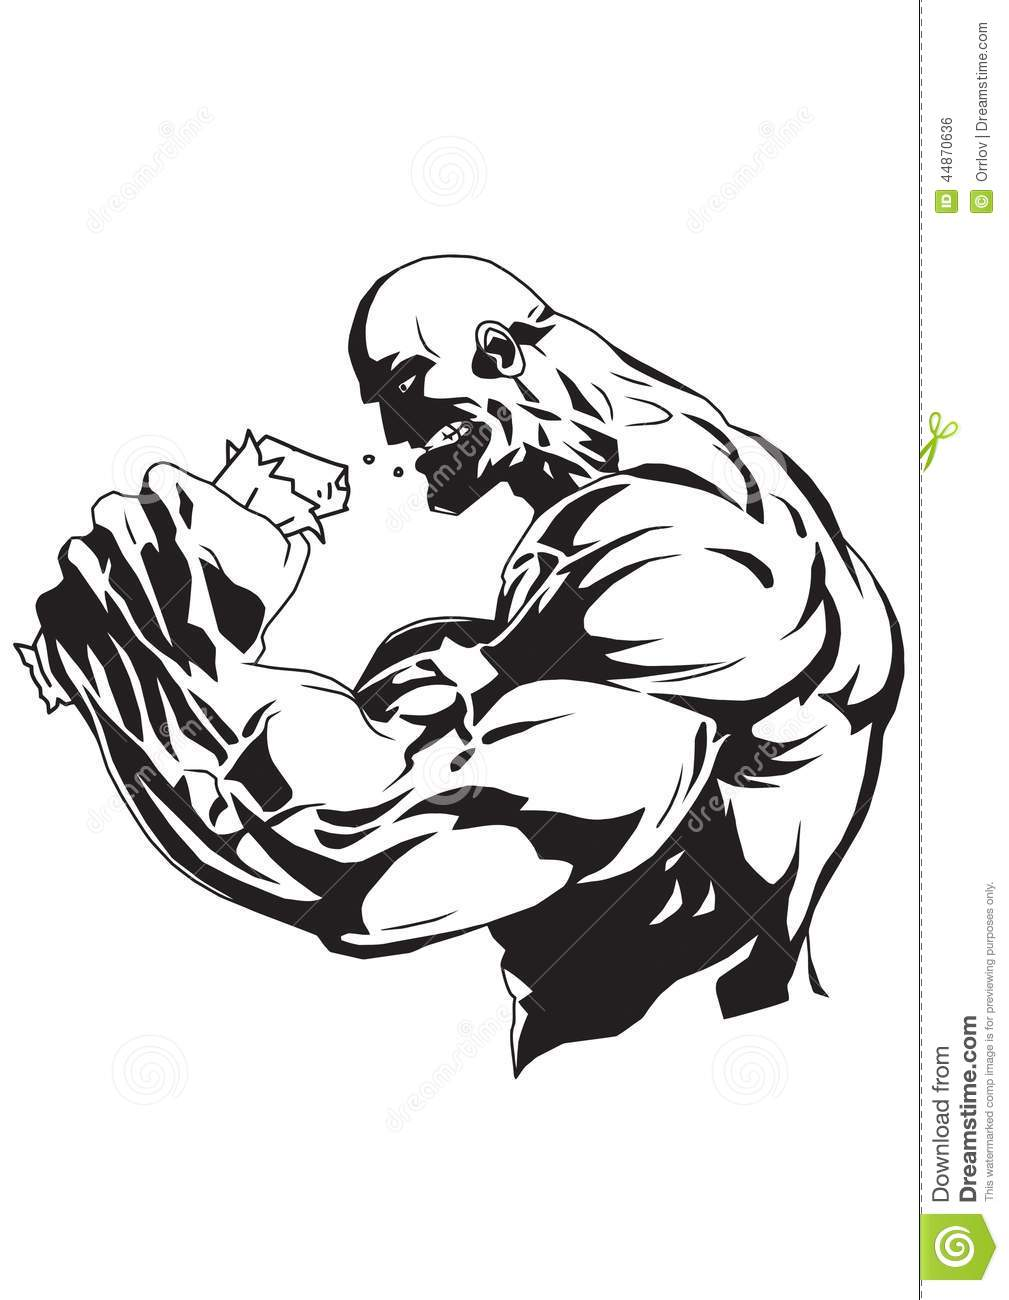 bodybuilding supplement vector illustration